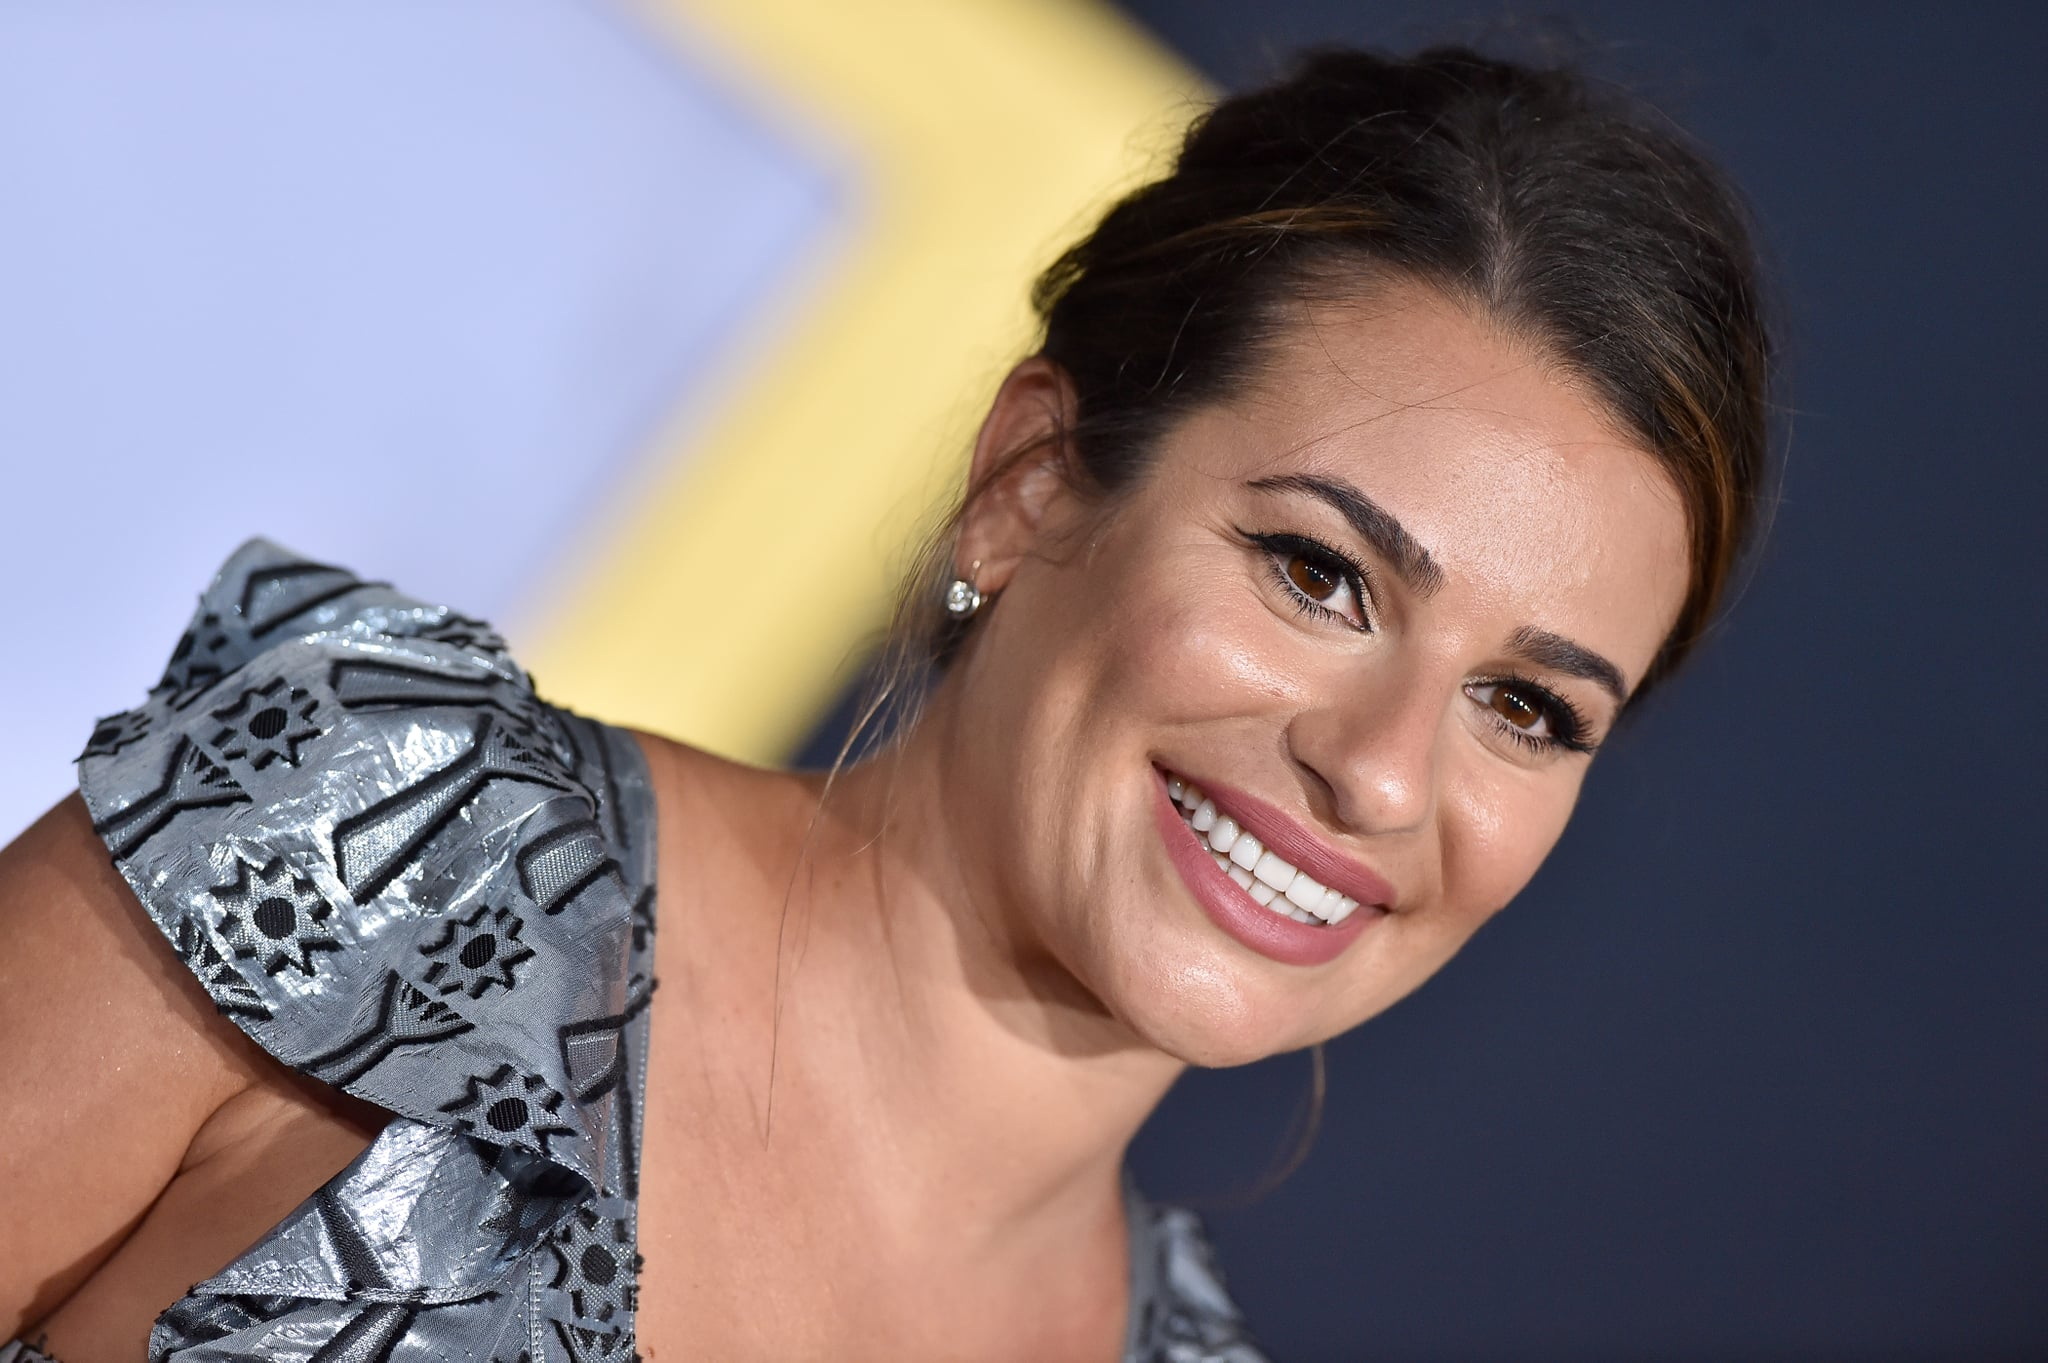 LOS ANGELES, CA - SEPTEMBER 24:  Lea Michele attends the premiere of Warner Bros. Pictures' 'A Star Is Born' at The Shrine Auditorium on September 24, 2018 in Los Angeles, California.  (Photo by Axelle/Bauer-Griffin/FilmMagic)